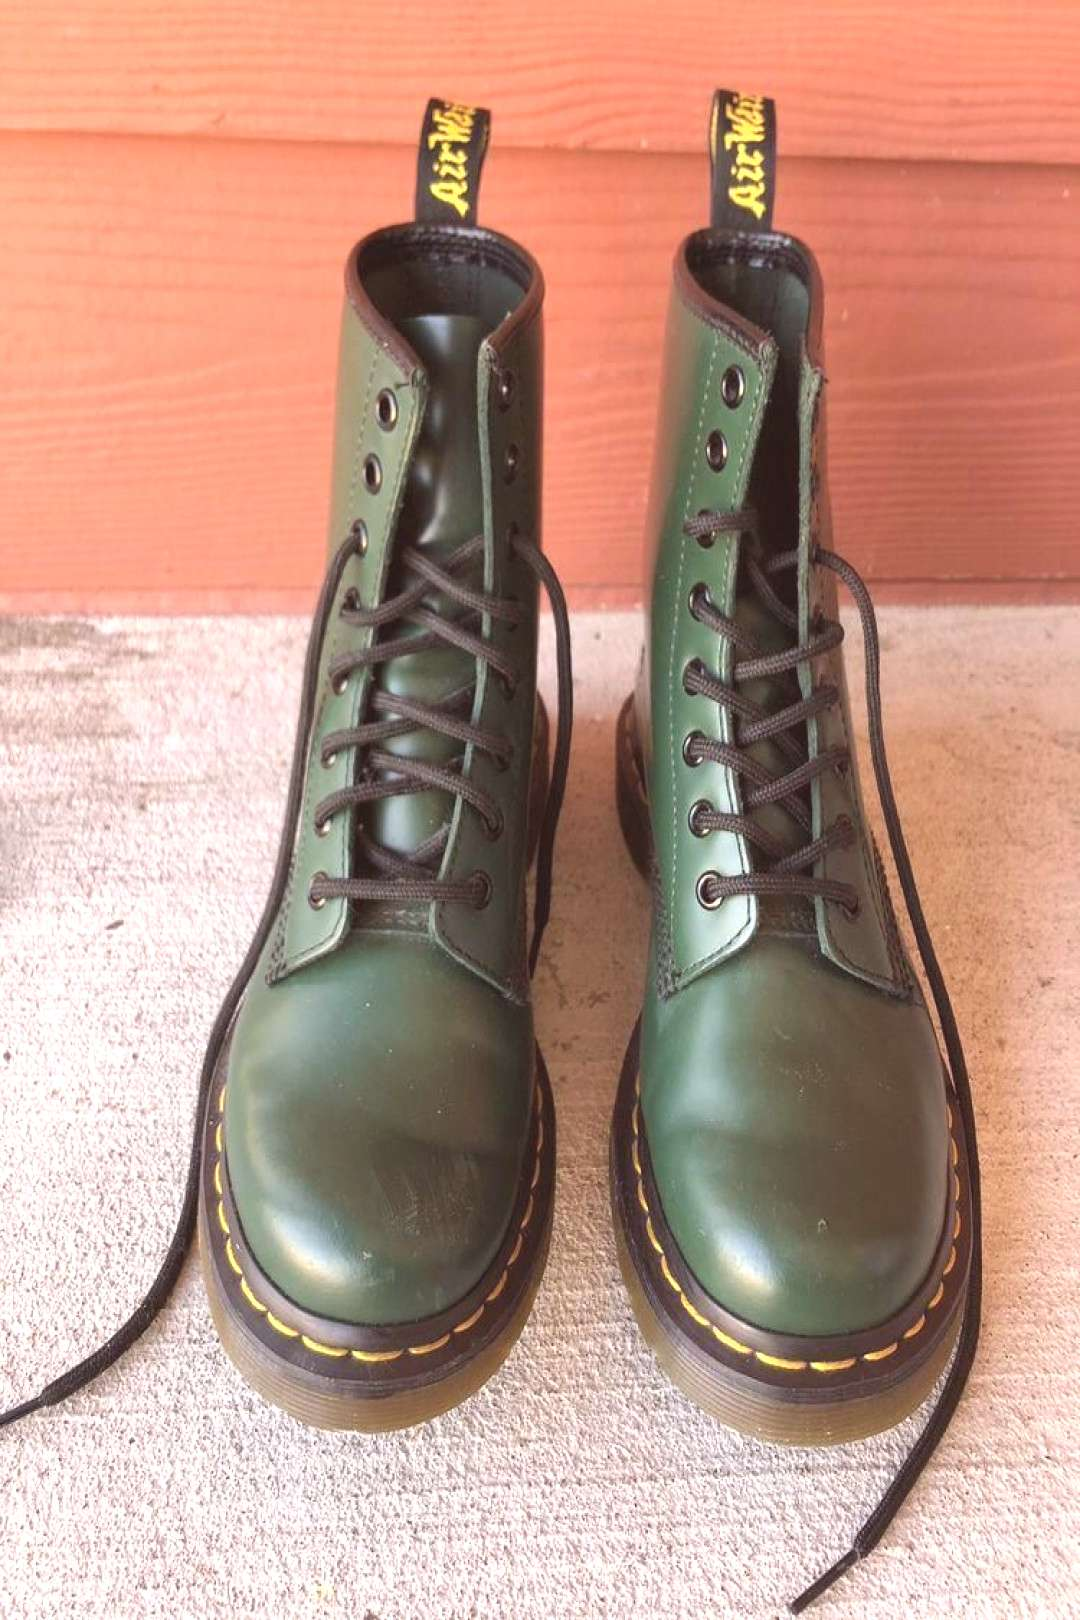 Green Doc Martens 1460s / Womens 7 / Mens 5 (ebay link)